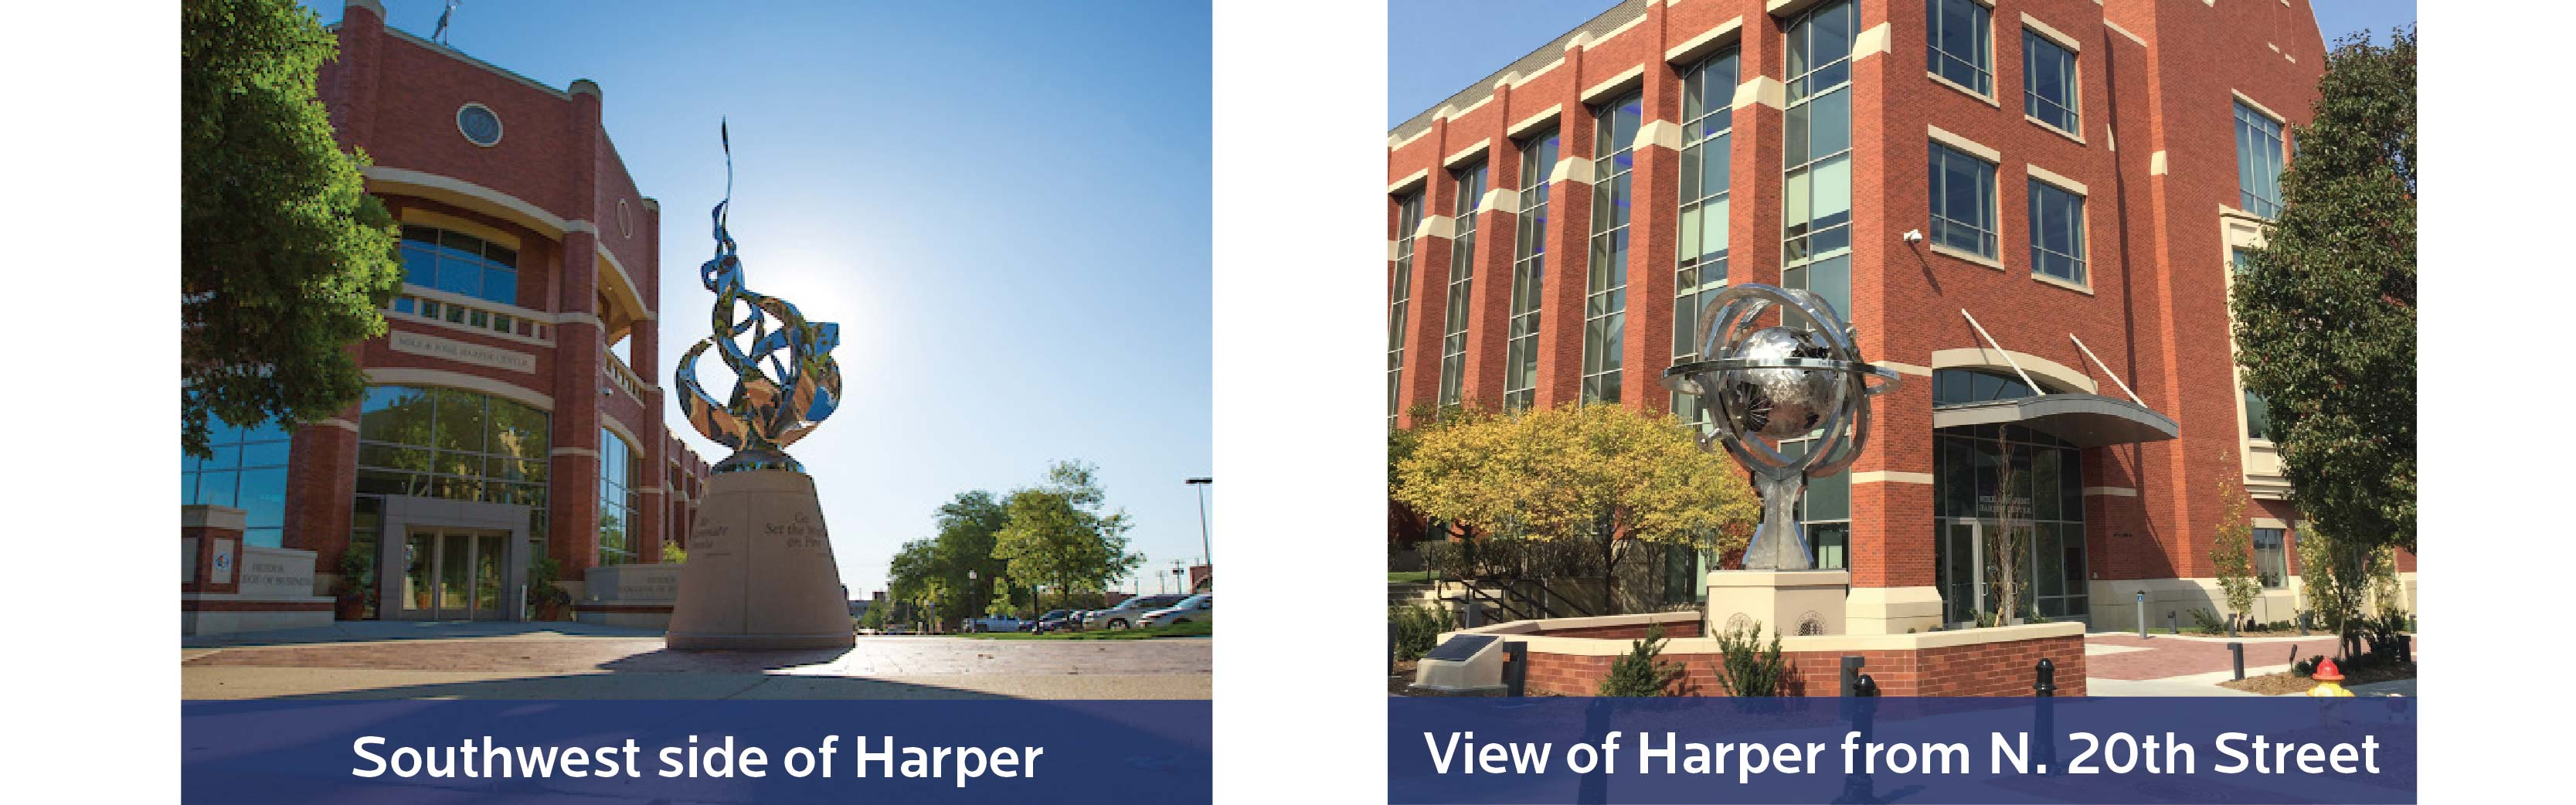 Views of Harper Center/Entrance to Admissions